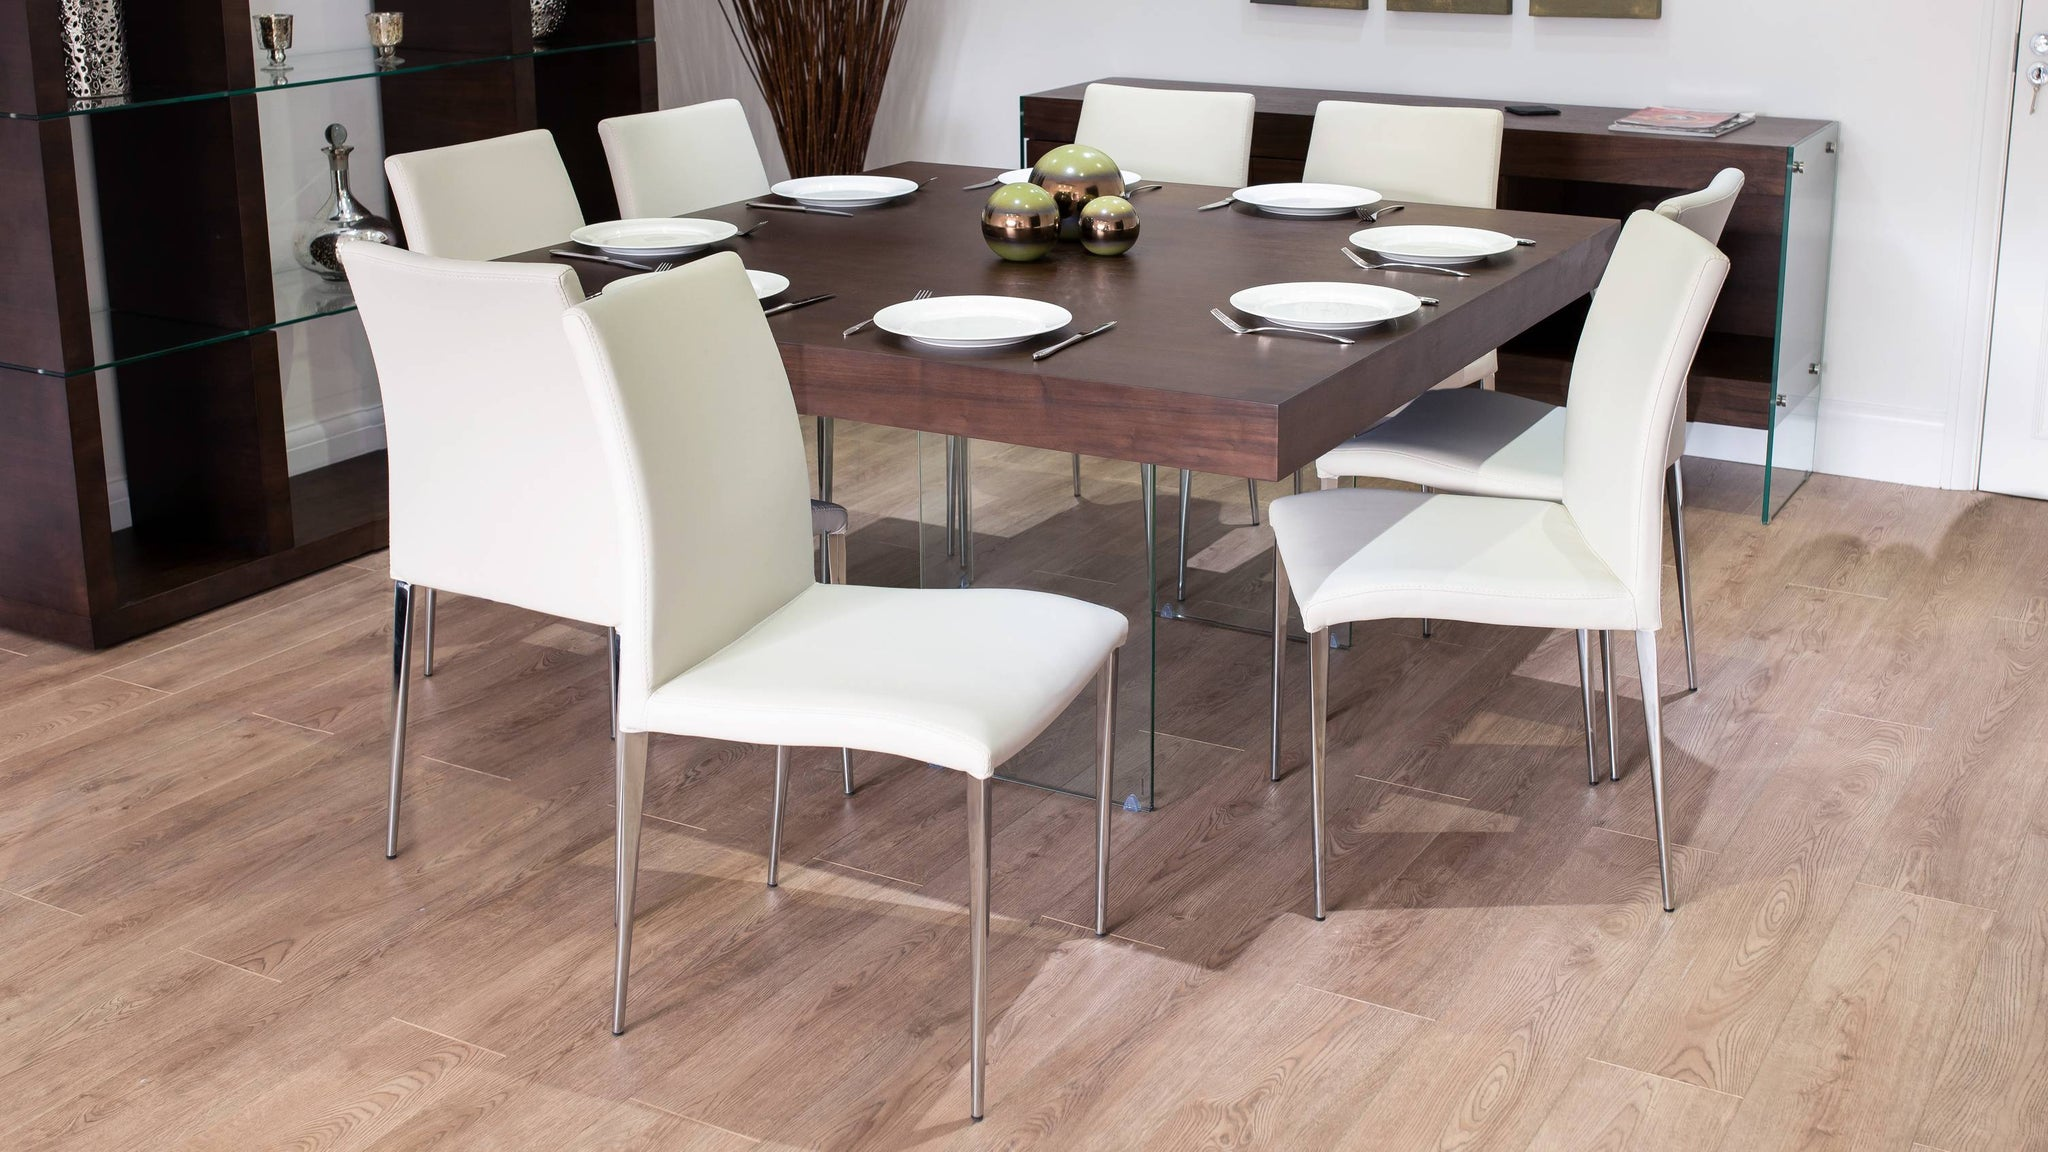 Large Square Dining Table with Modern Chairs